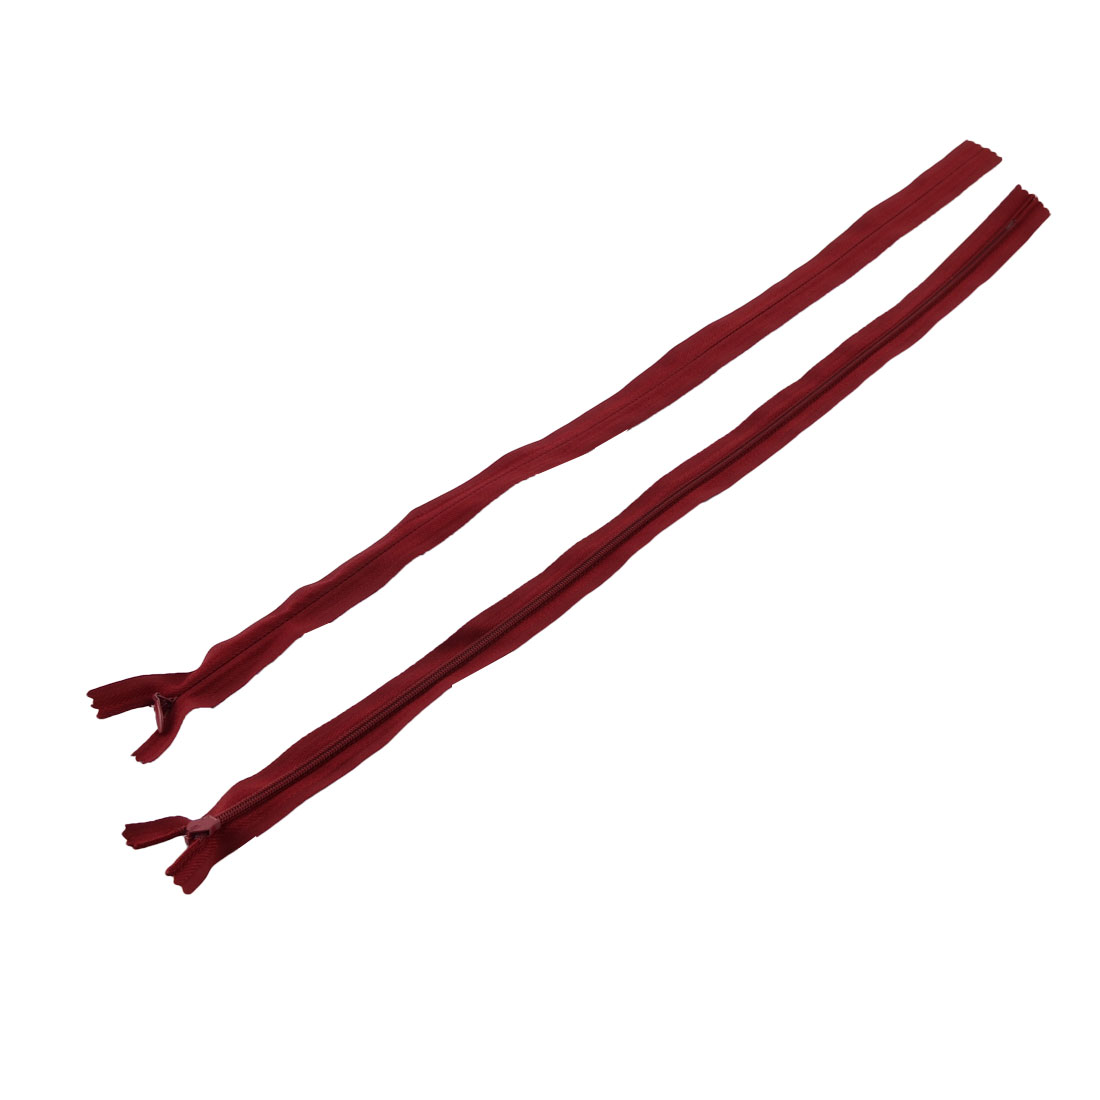 Tailor Nylon Smooth Invisible Zippers Sewing Tools Red 50cm Length 2PCS